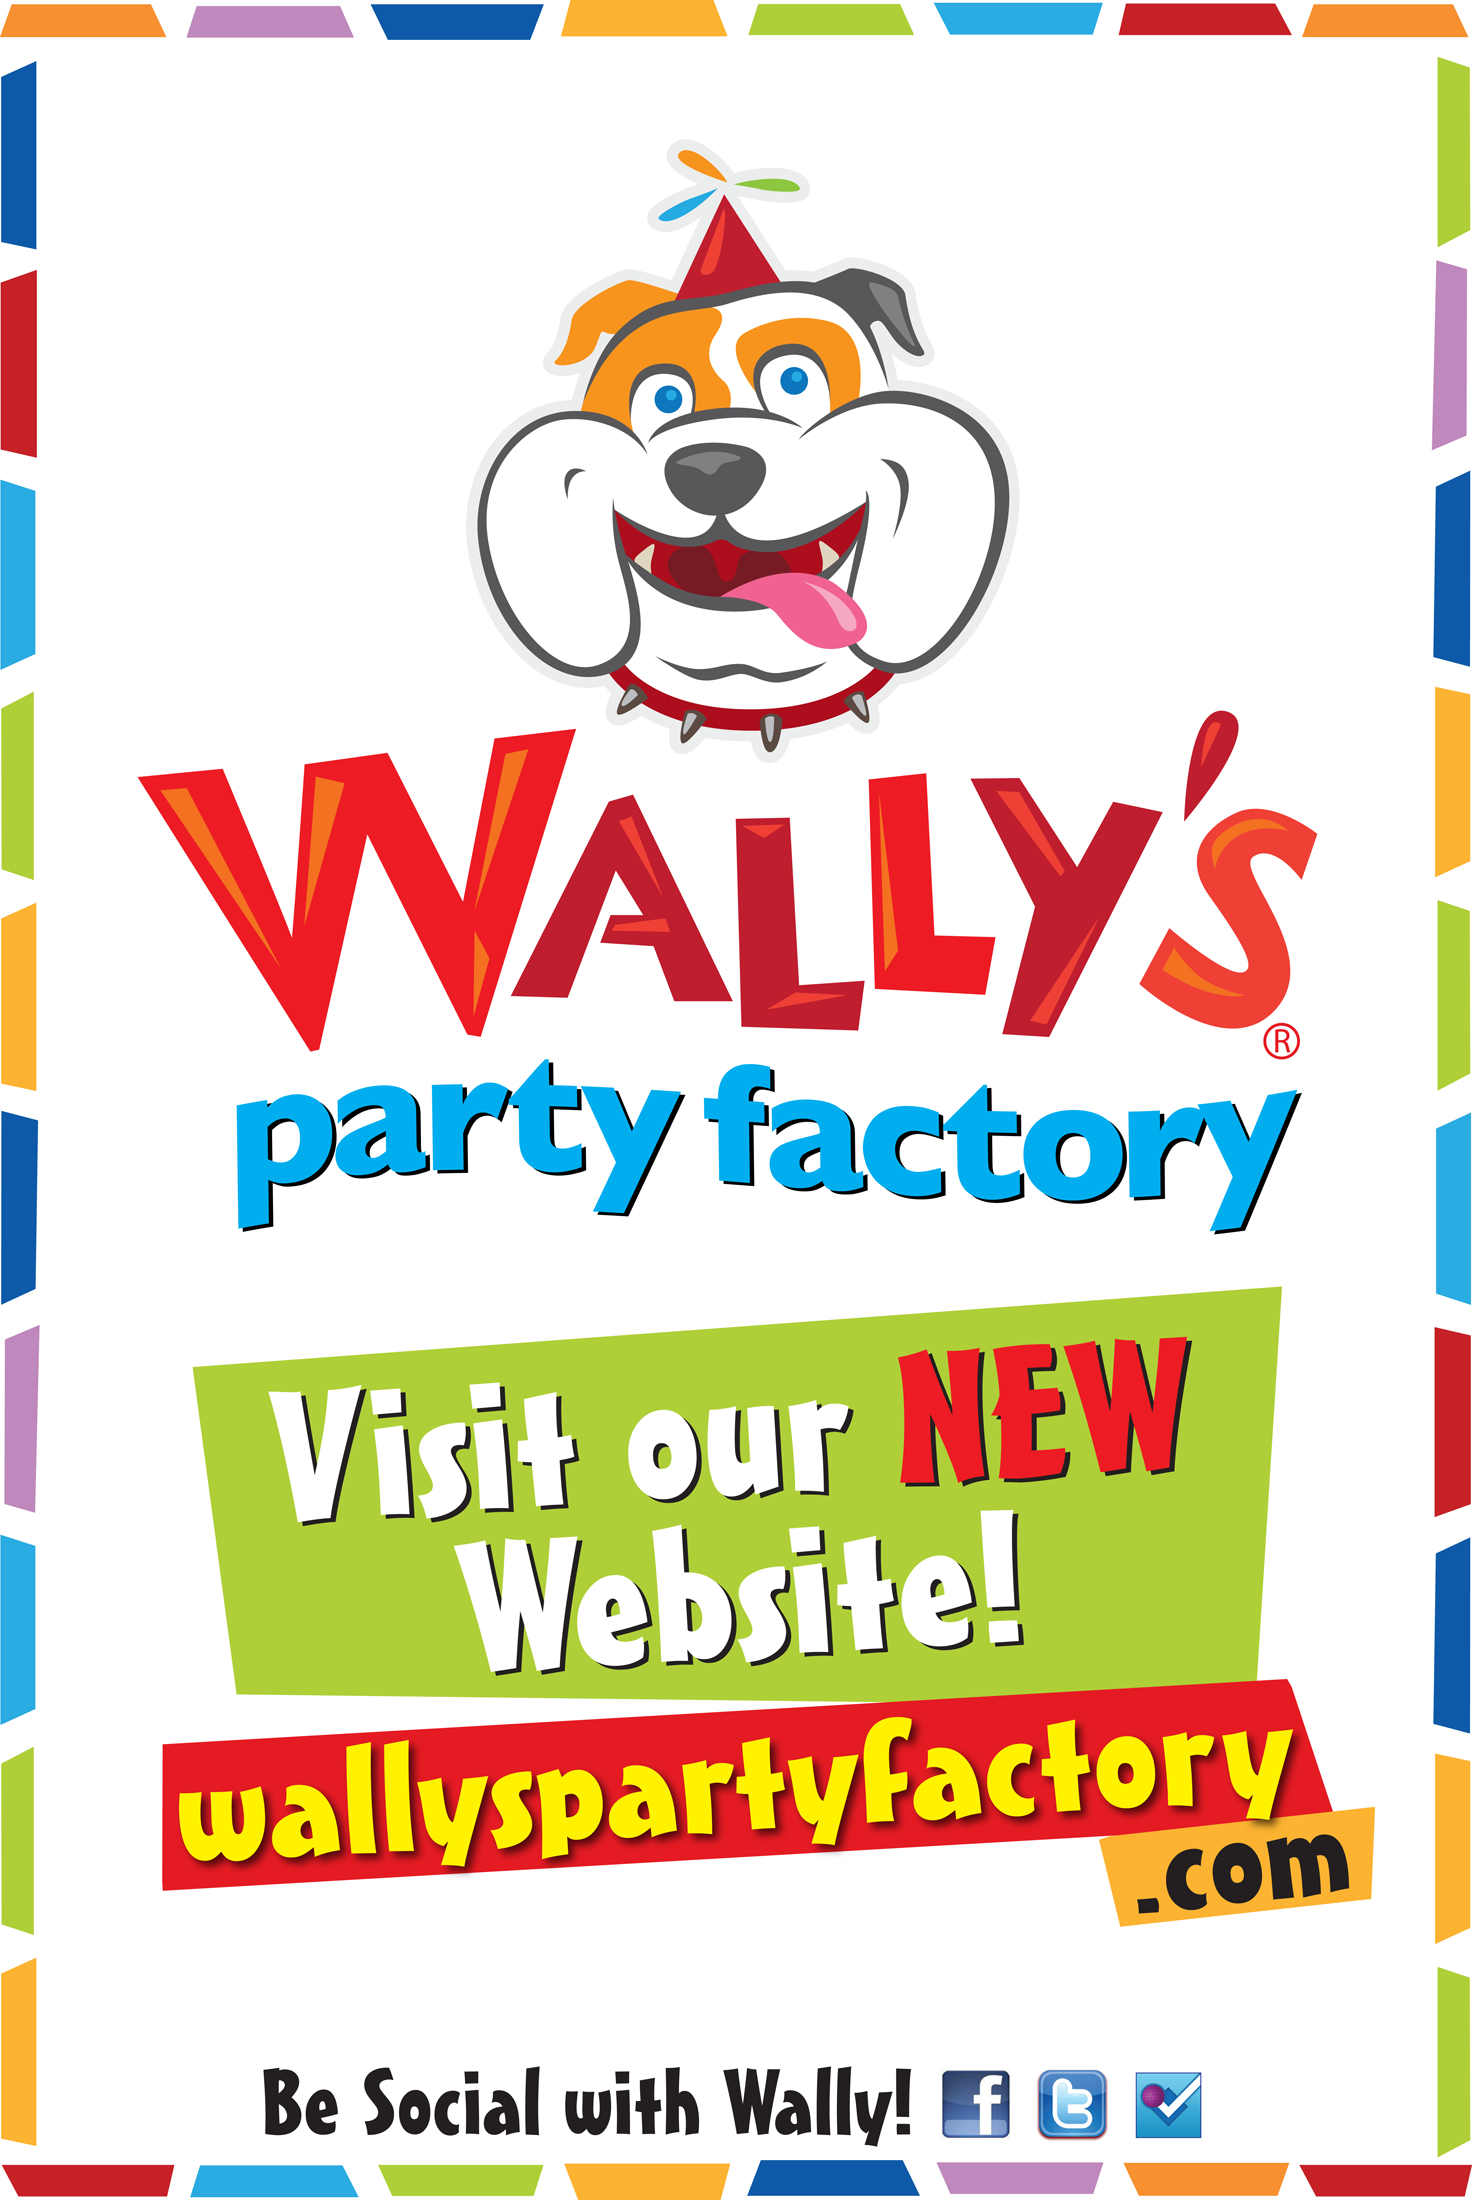 Wally's Party Factory in Rockwall Supports Boles Children's Home ...